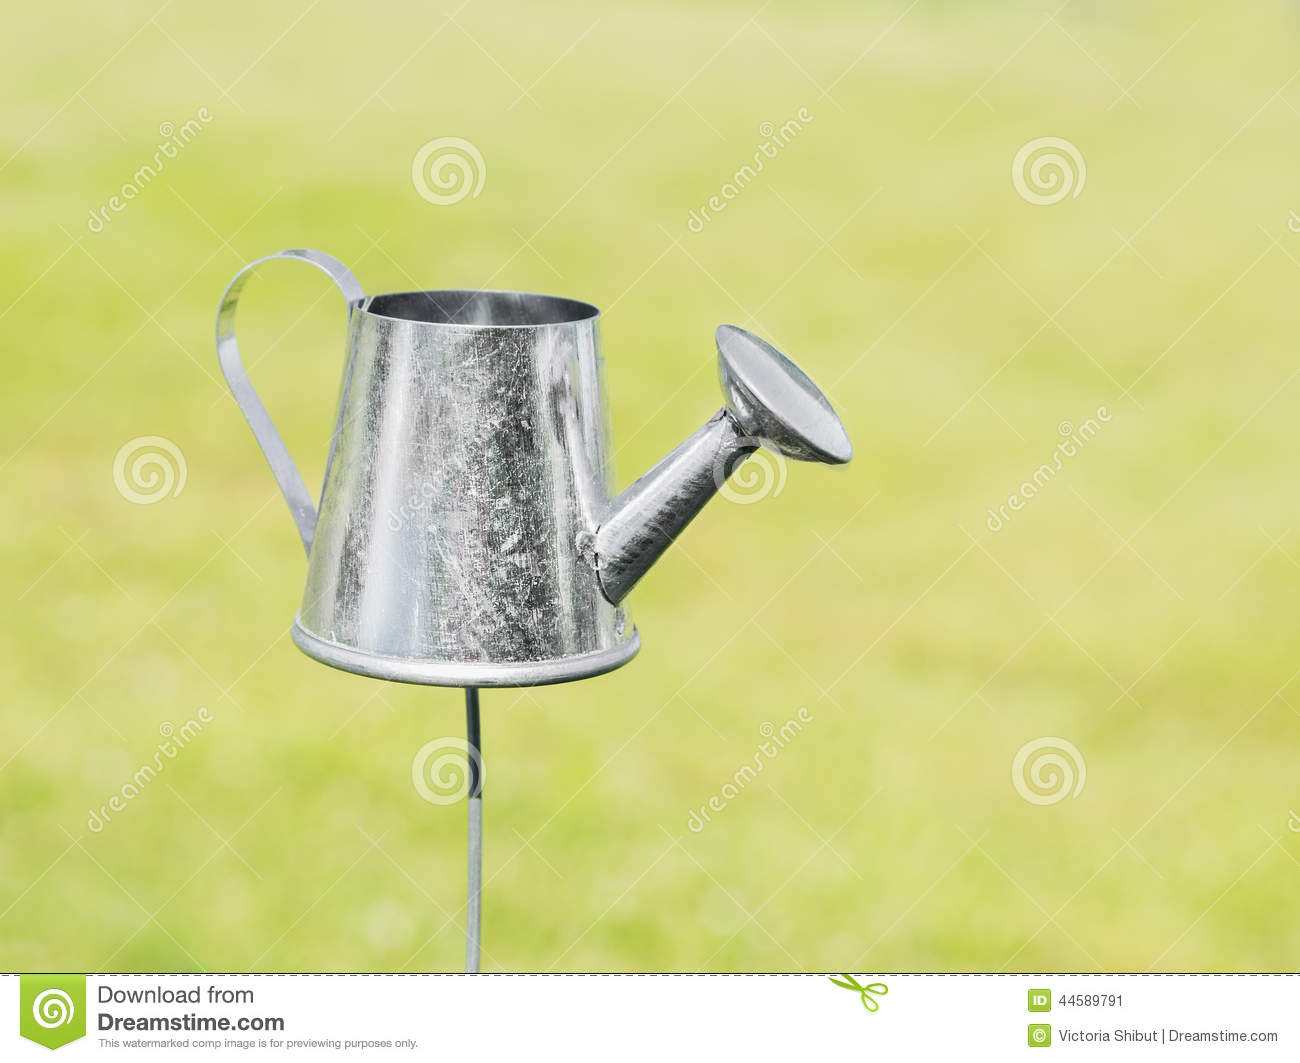 decorative silver garden watering can stock photo - image: 44589791